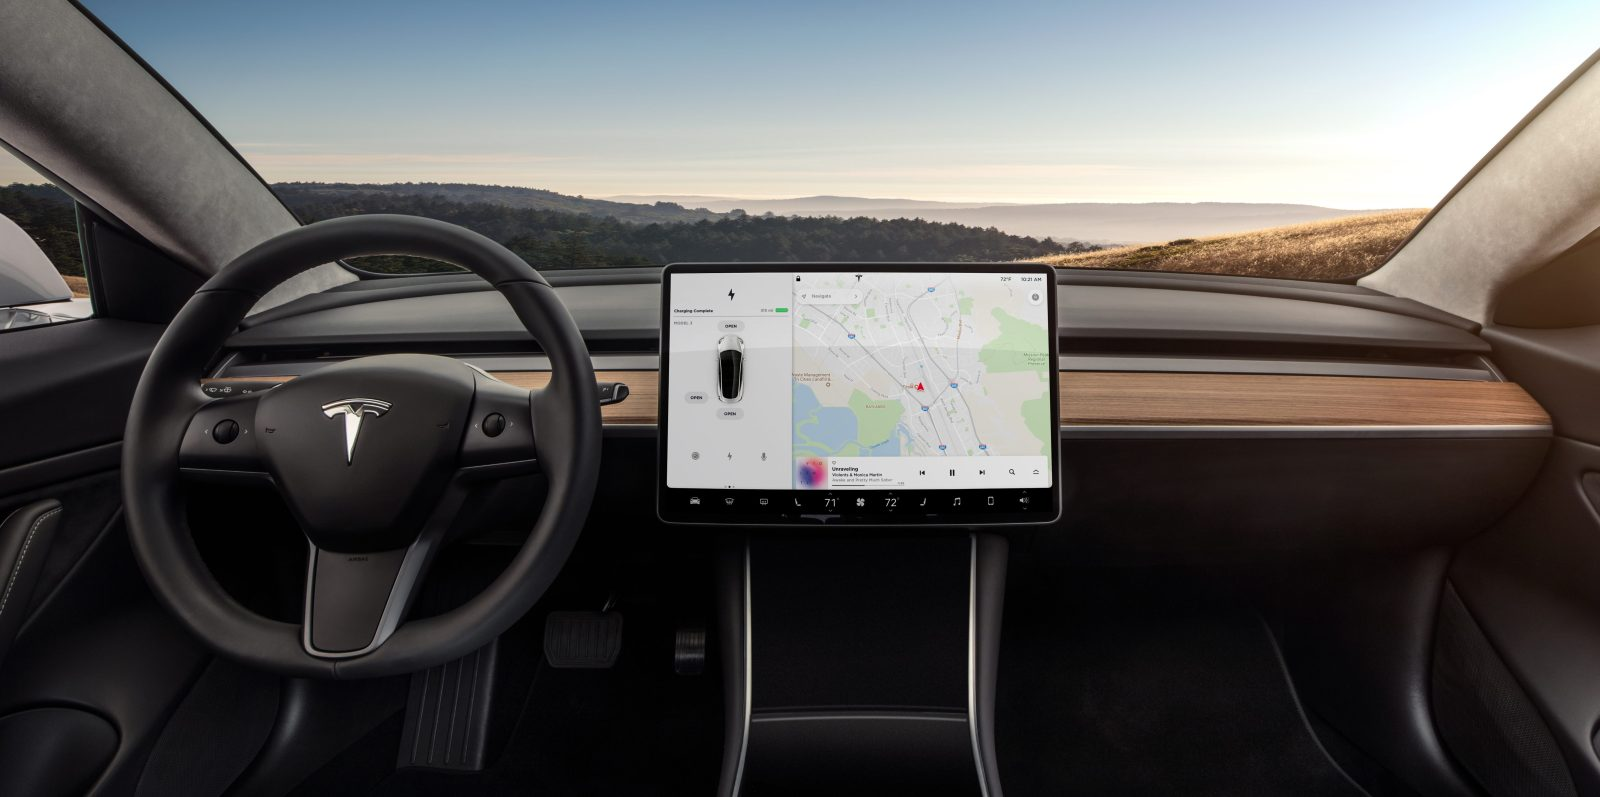 hight resolution of tesla asks trump administration for a tariff exemption on critical computer in model 3